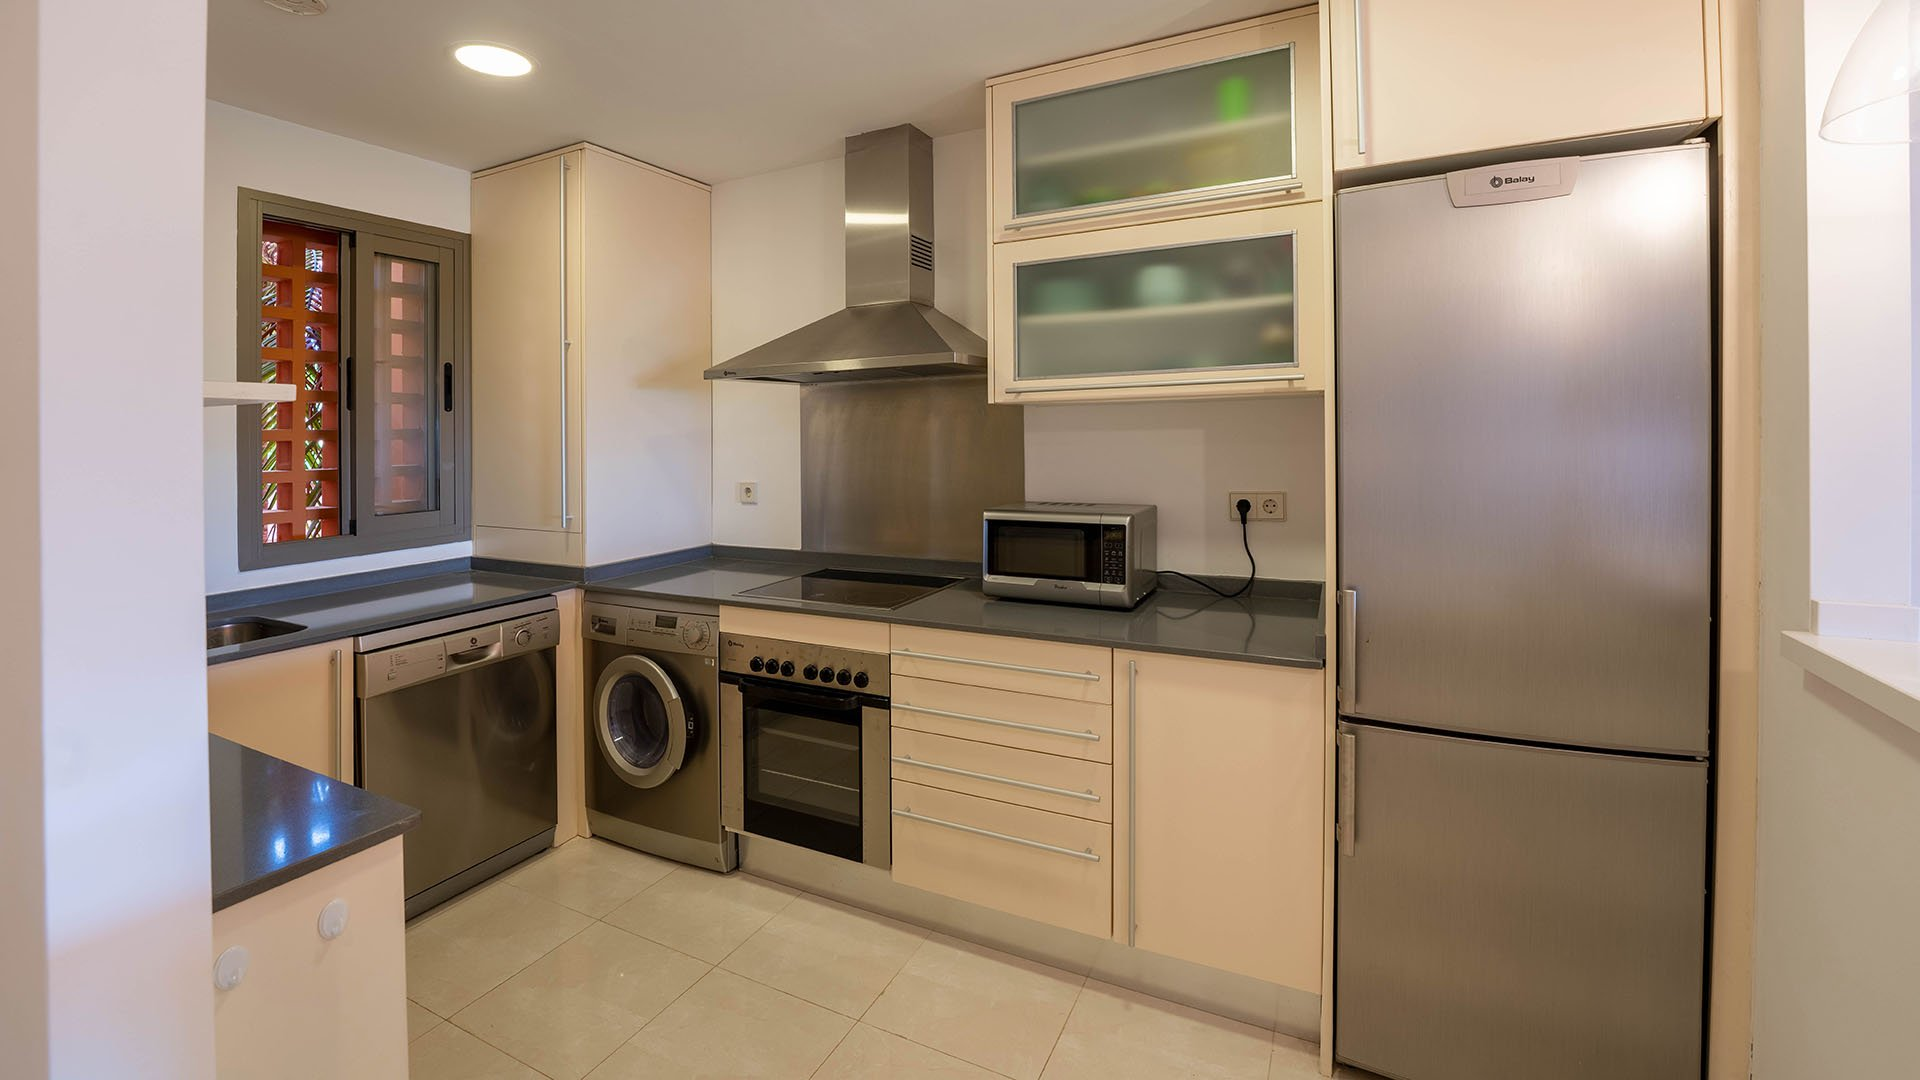 Sotoserena: Apartment in Estepona at walking distance from the beach